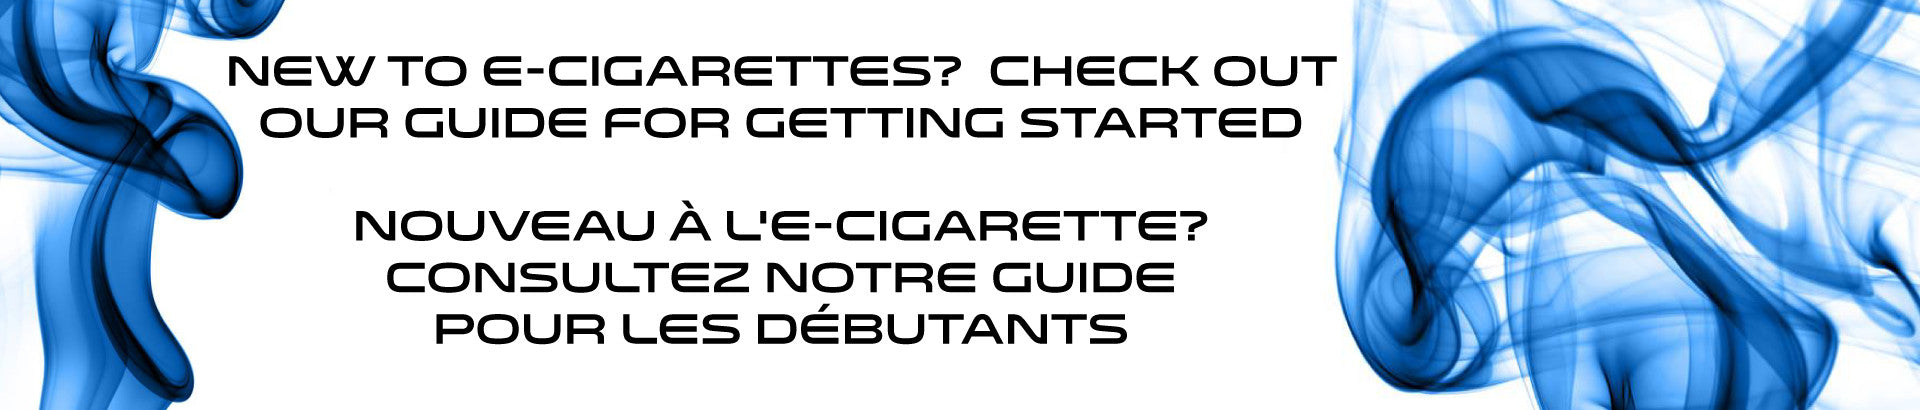 New to E-Cigarettes and Vaping?